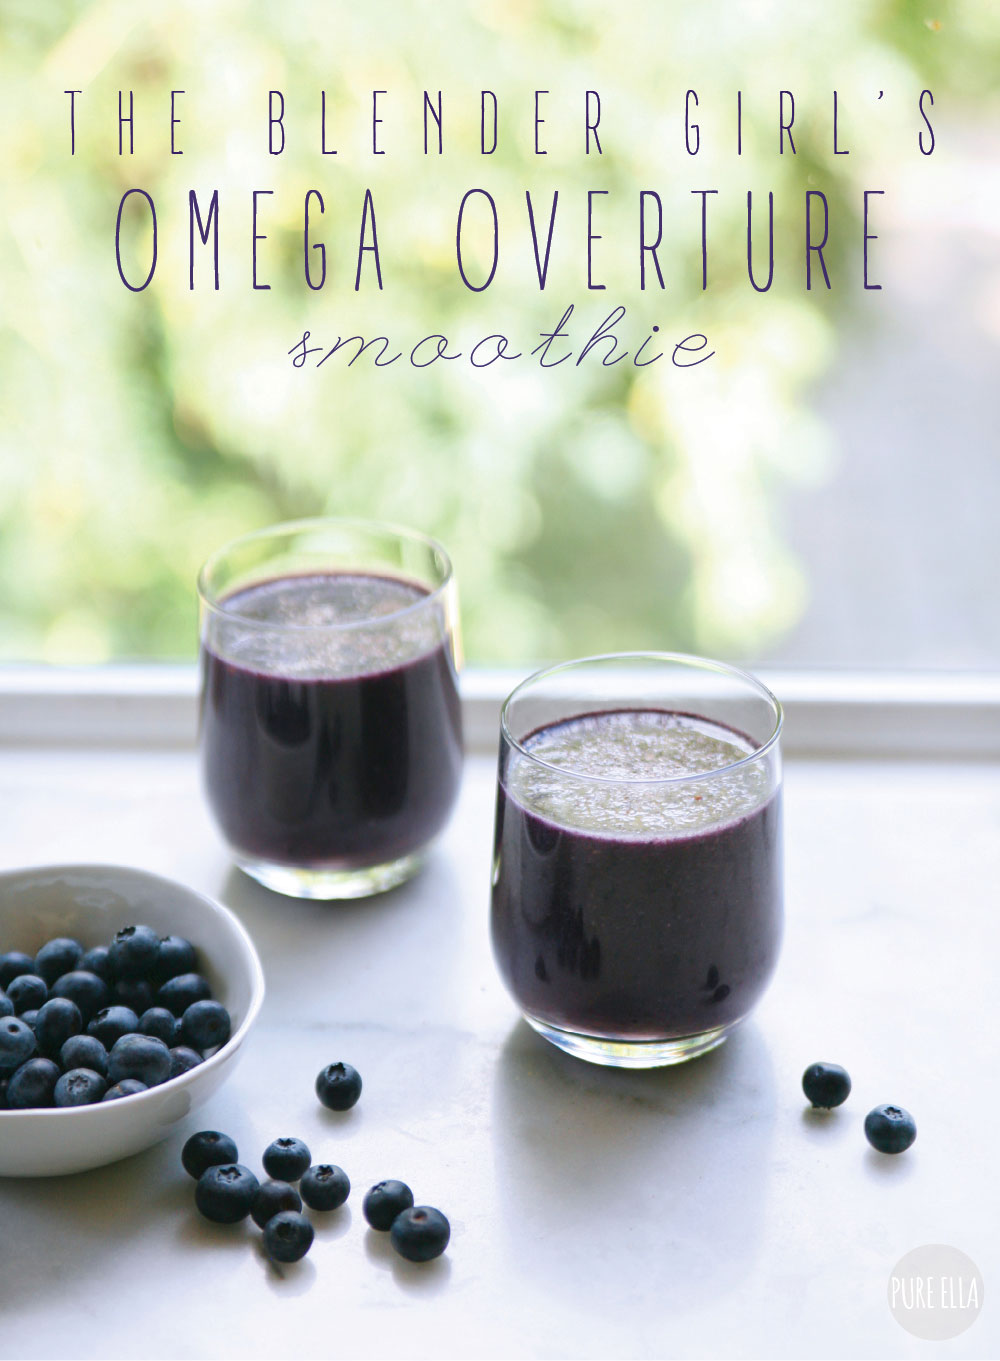 Omega-Overture-Blender-Girl-Smoothies